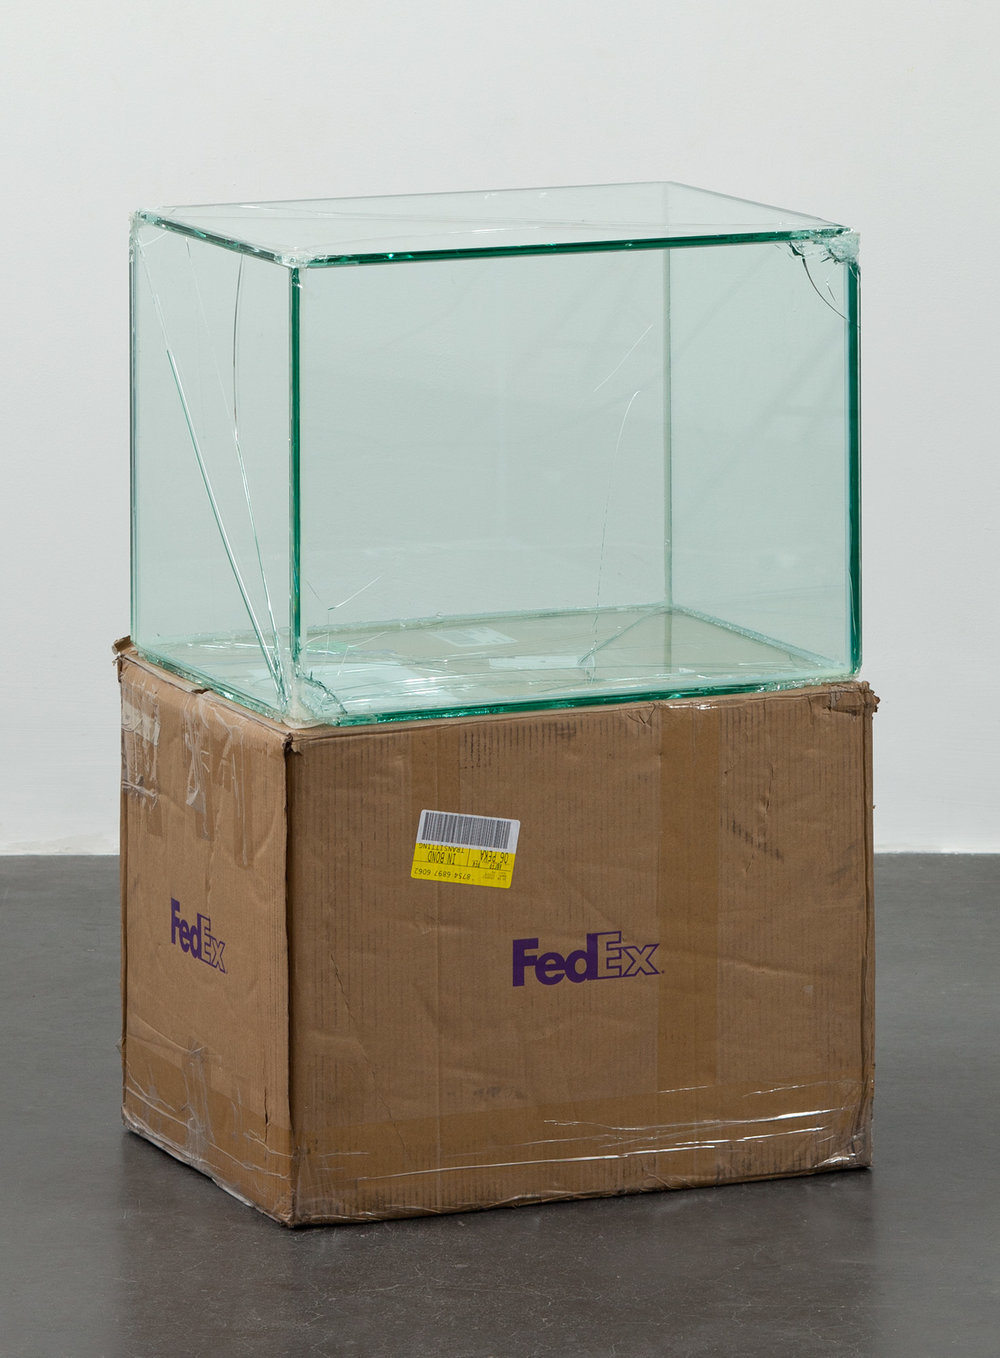 FedEx Large Kraft Box 2004 FEDEX 155143 REV 10/04 SSCC, International Priority, Los Angeles-Beijing trk#875468976062, September 9–14, 2011, International Priority, Bejing–London trk#874594463978, March 13–15, 2012    2011–   Laminated glass, FedEx shipping box, accrued FedEx shipping and tracking labels, silicone, metal, tape  23 5/8 x 18 1/2 x 18 1/2 inches   Securities and Exchanges, 2011